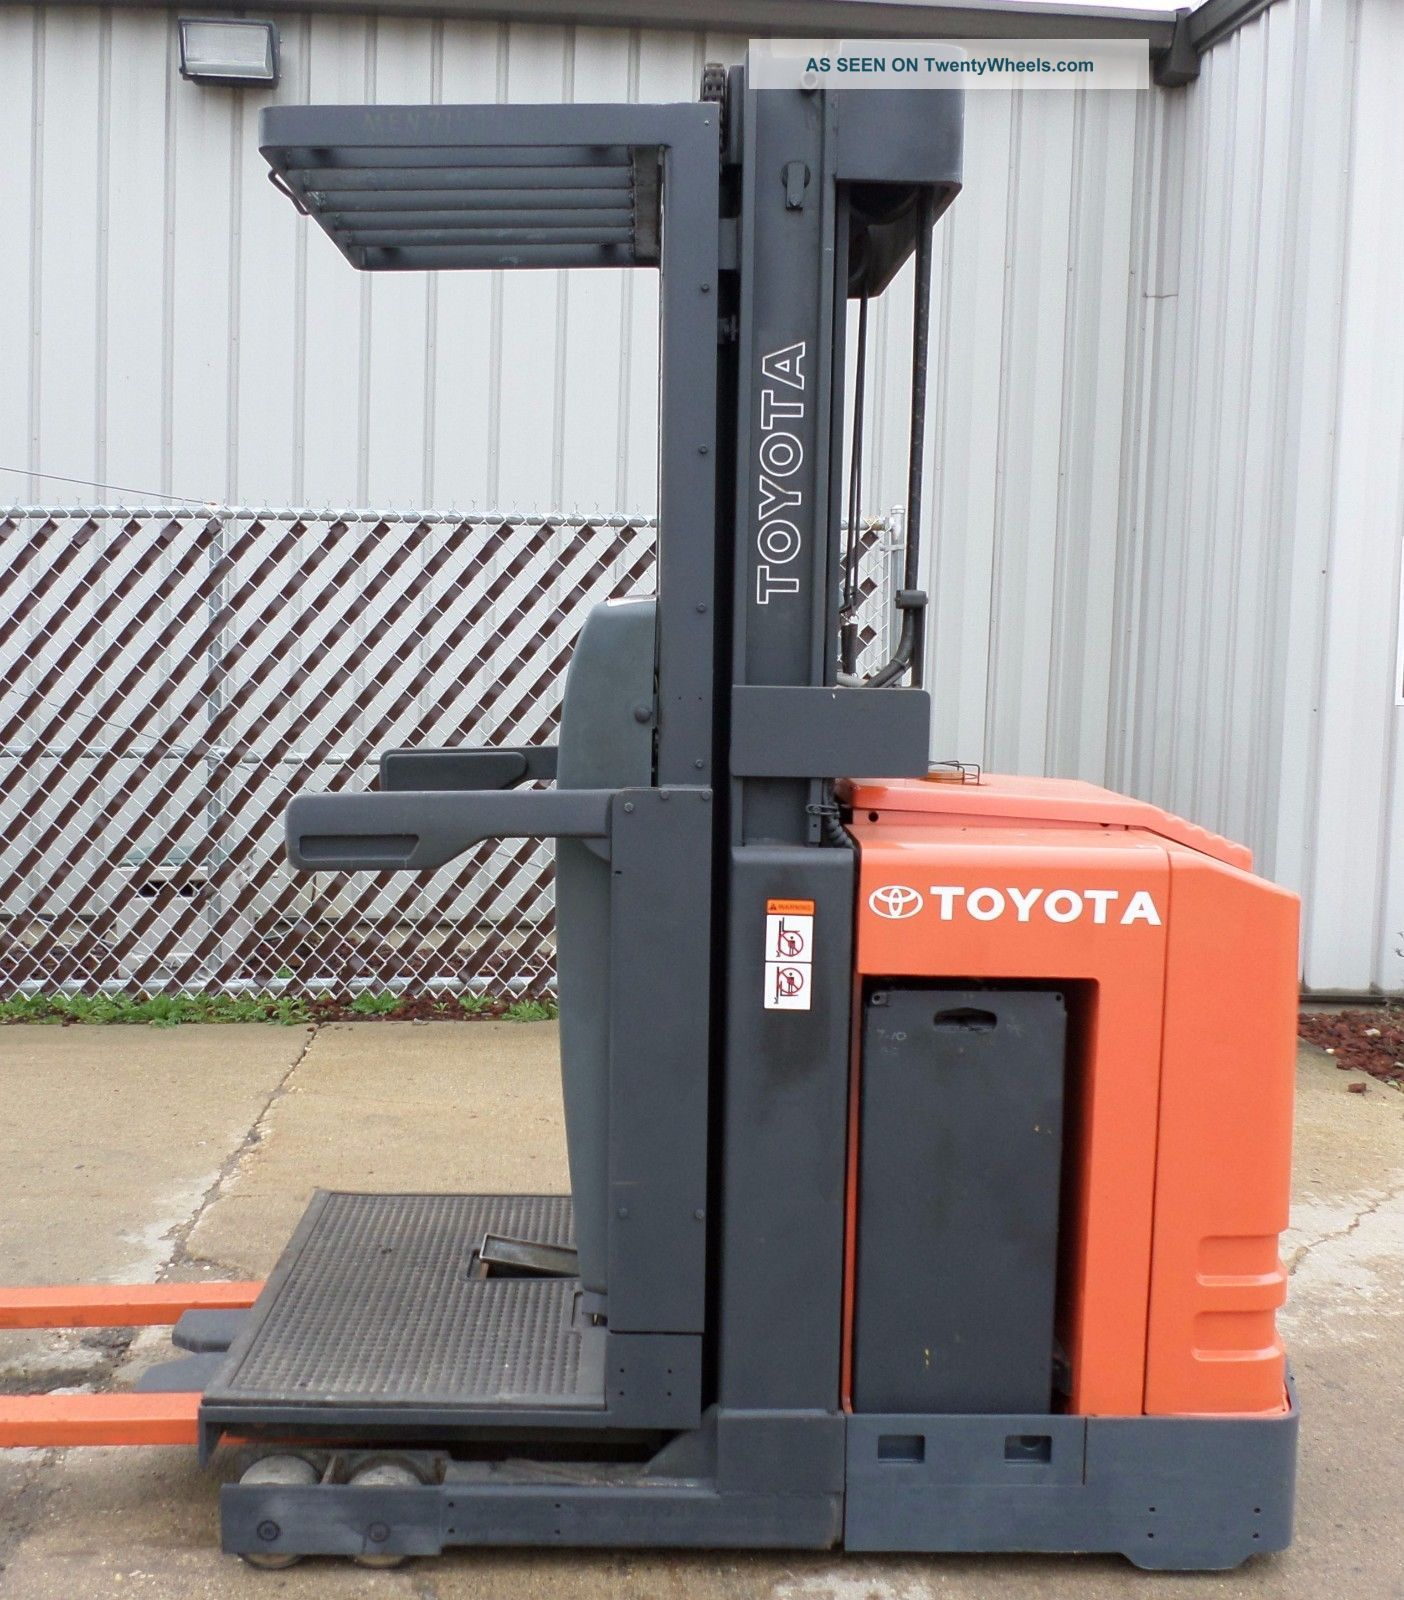 Toyota Model 6bpu15 (2005) 3000 Lbs Capacity Order Picker Electric Forklift Forklifts photo